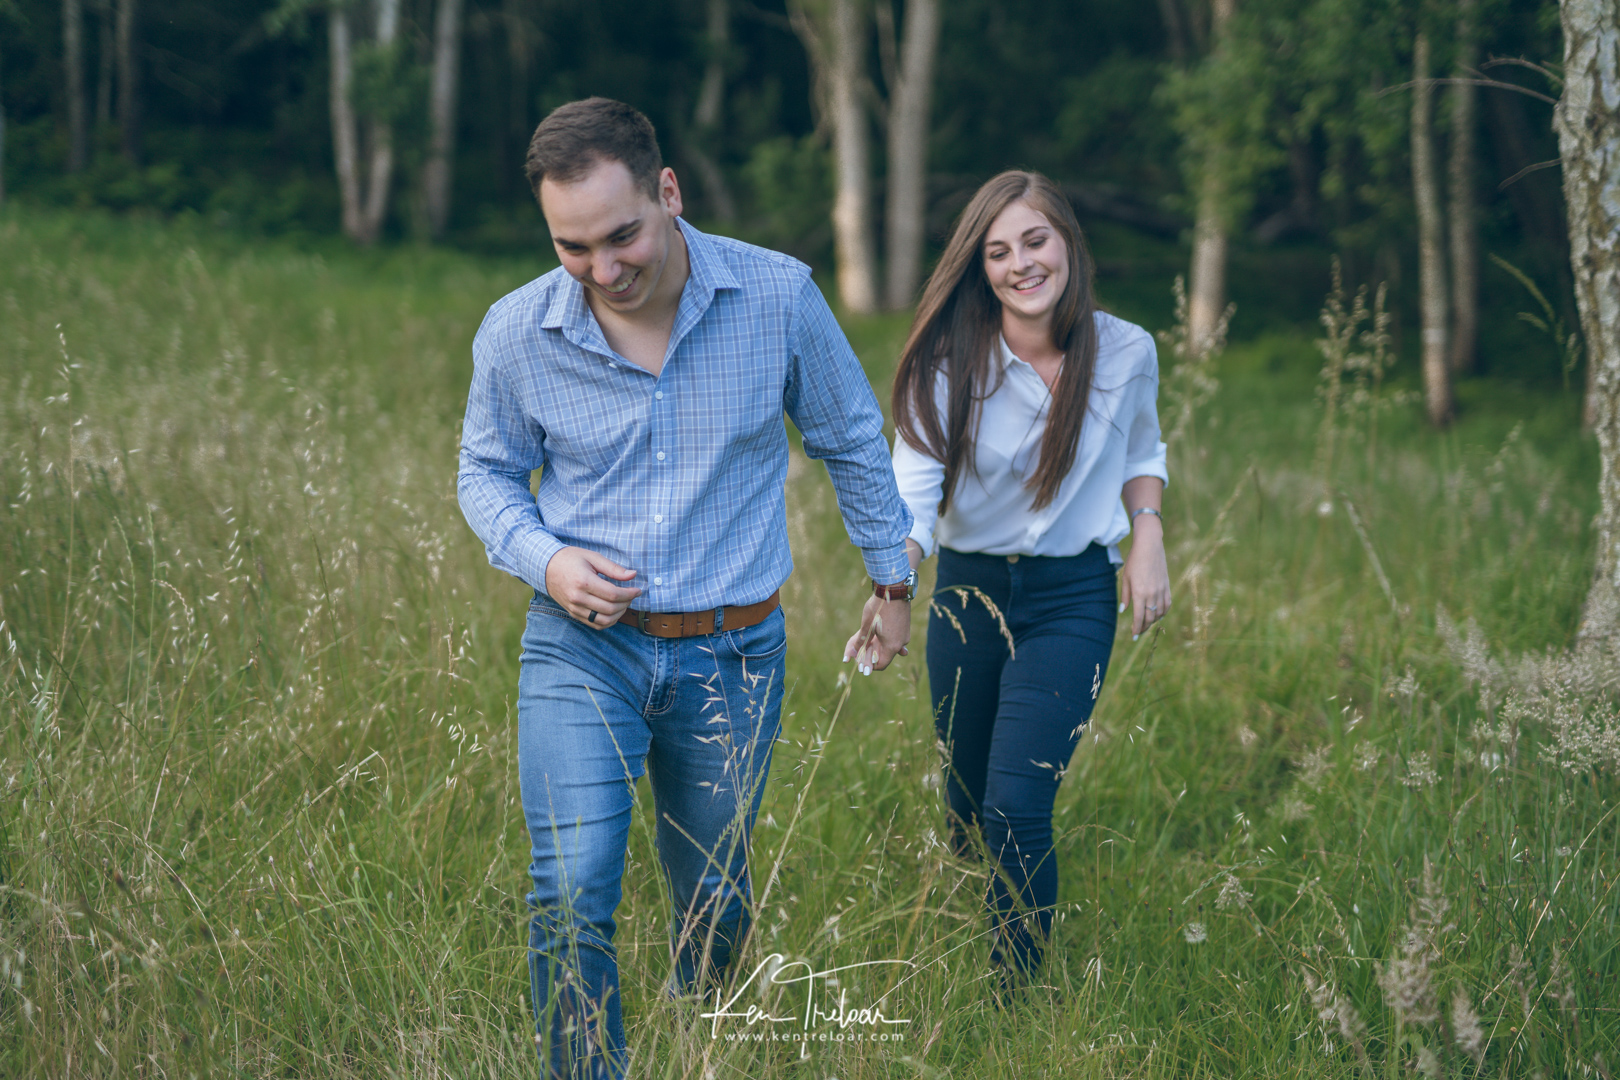 Ken Treloar Photography - Couples  photoshoot session Cape Town - all rights reserved-17.jpg